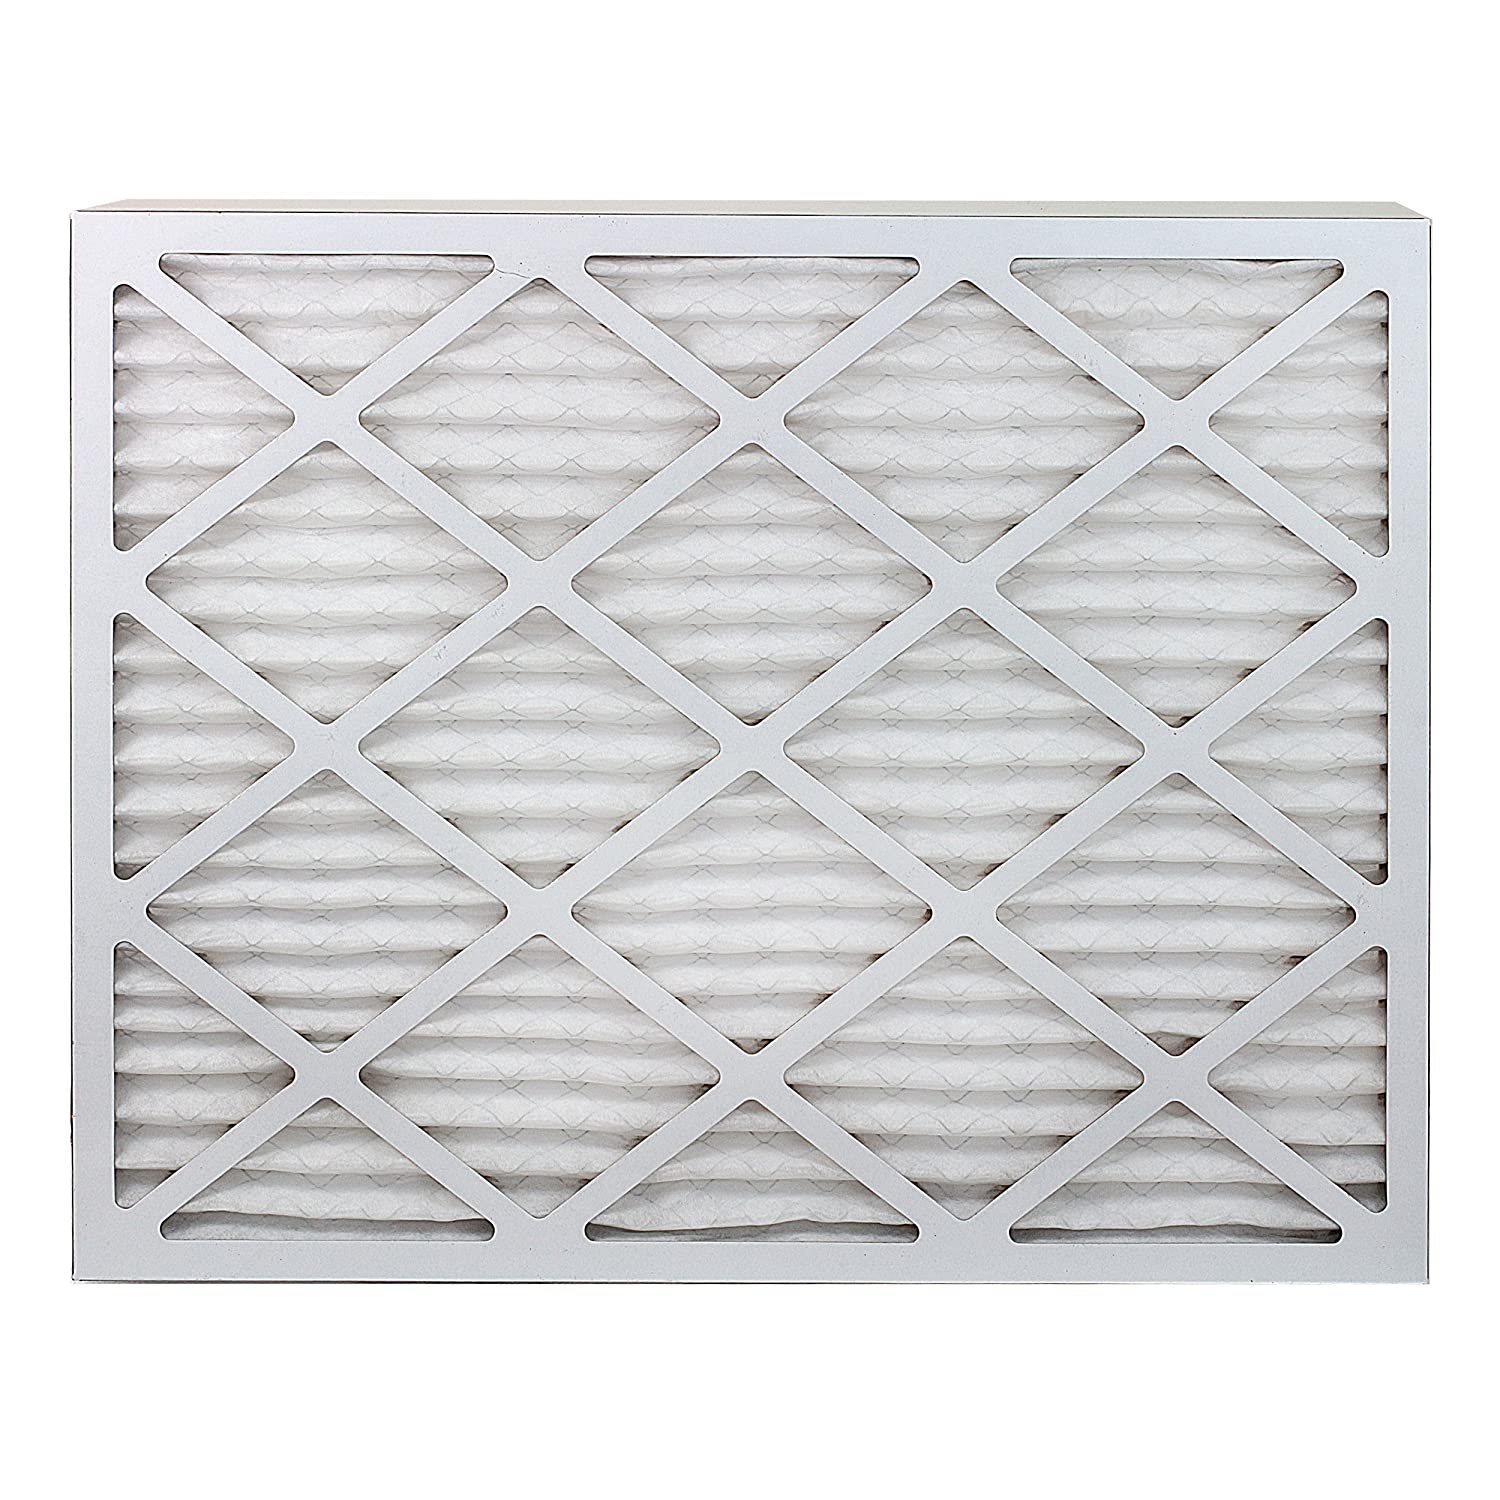 Nordic Pure 20x24x1 MERV 8 Pure Carbon Pleated Odor Reduction AC Furnace Air Filters 2 Pack